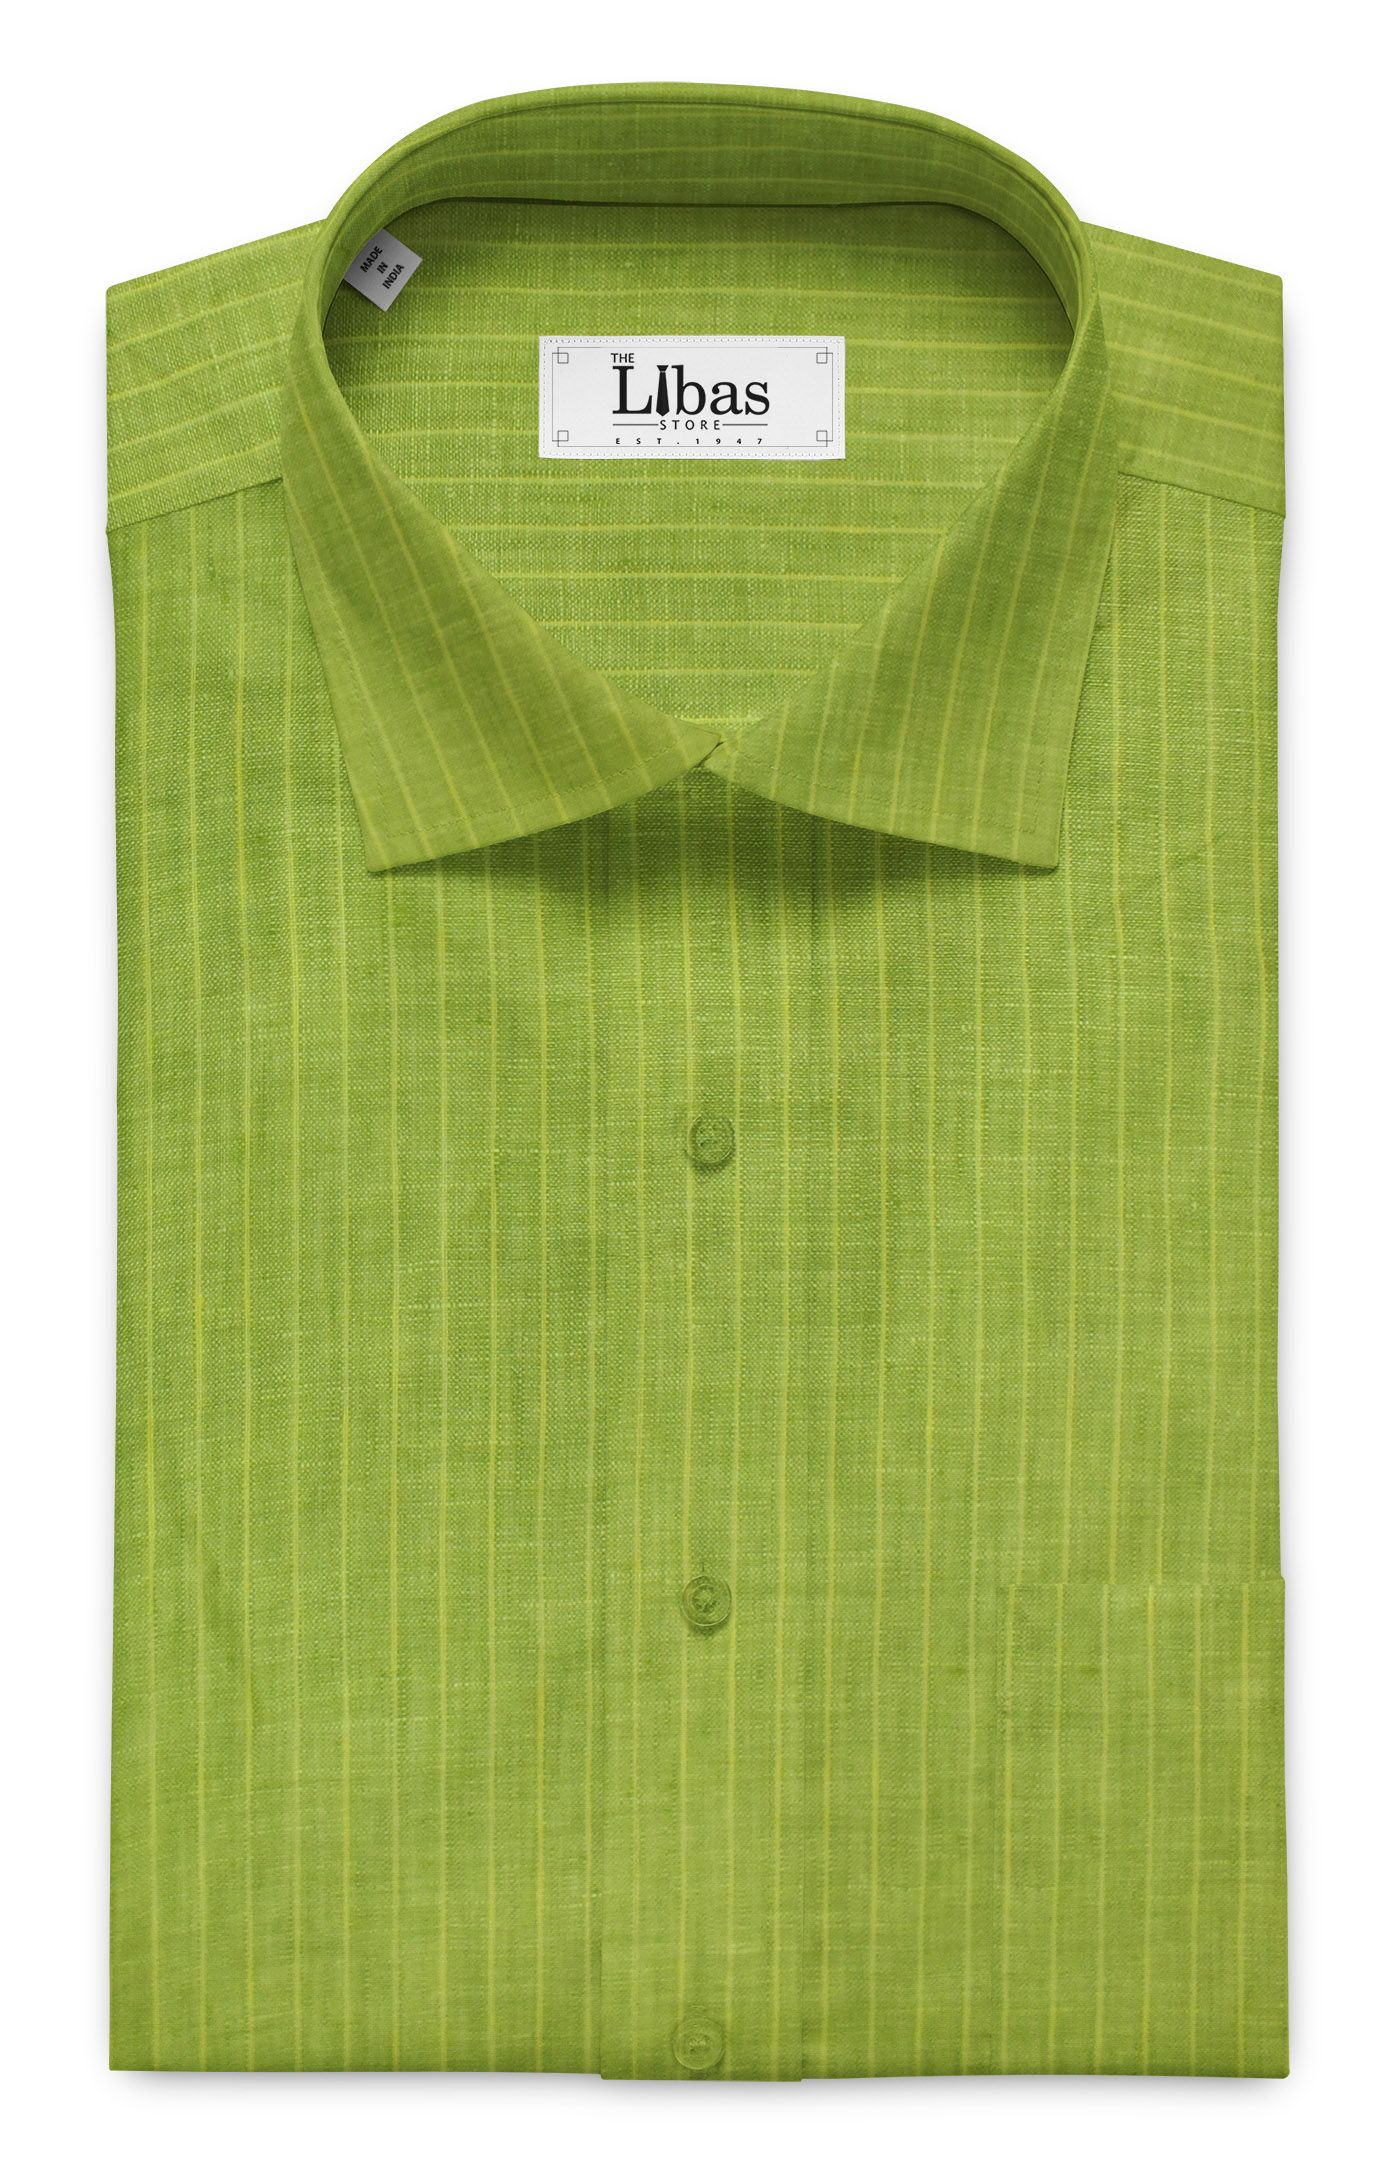 Nemesis Grass Green 100 Pure Linen 60 Lea Striped Shirt Fabric 1 60 M Striped Shirt Pure Linen Shirts